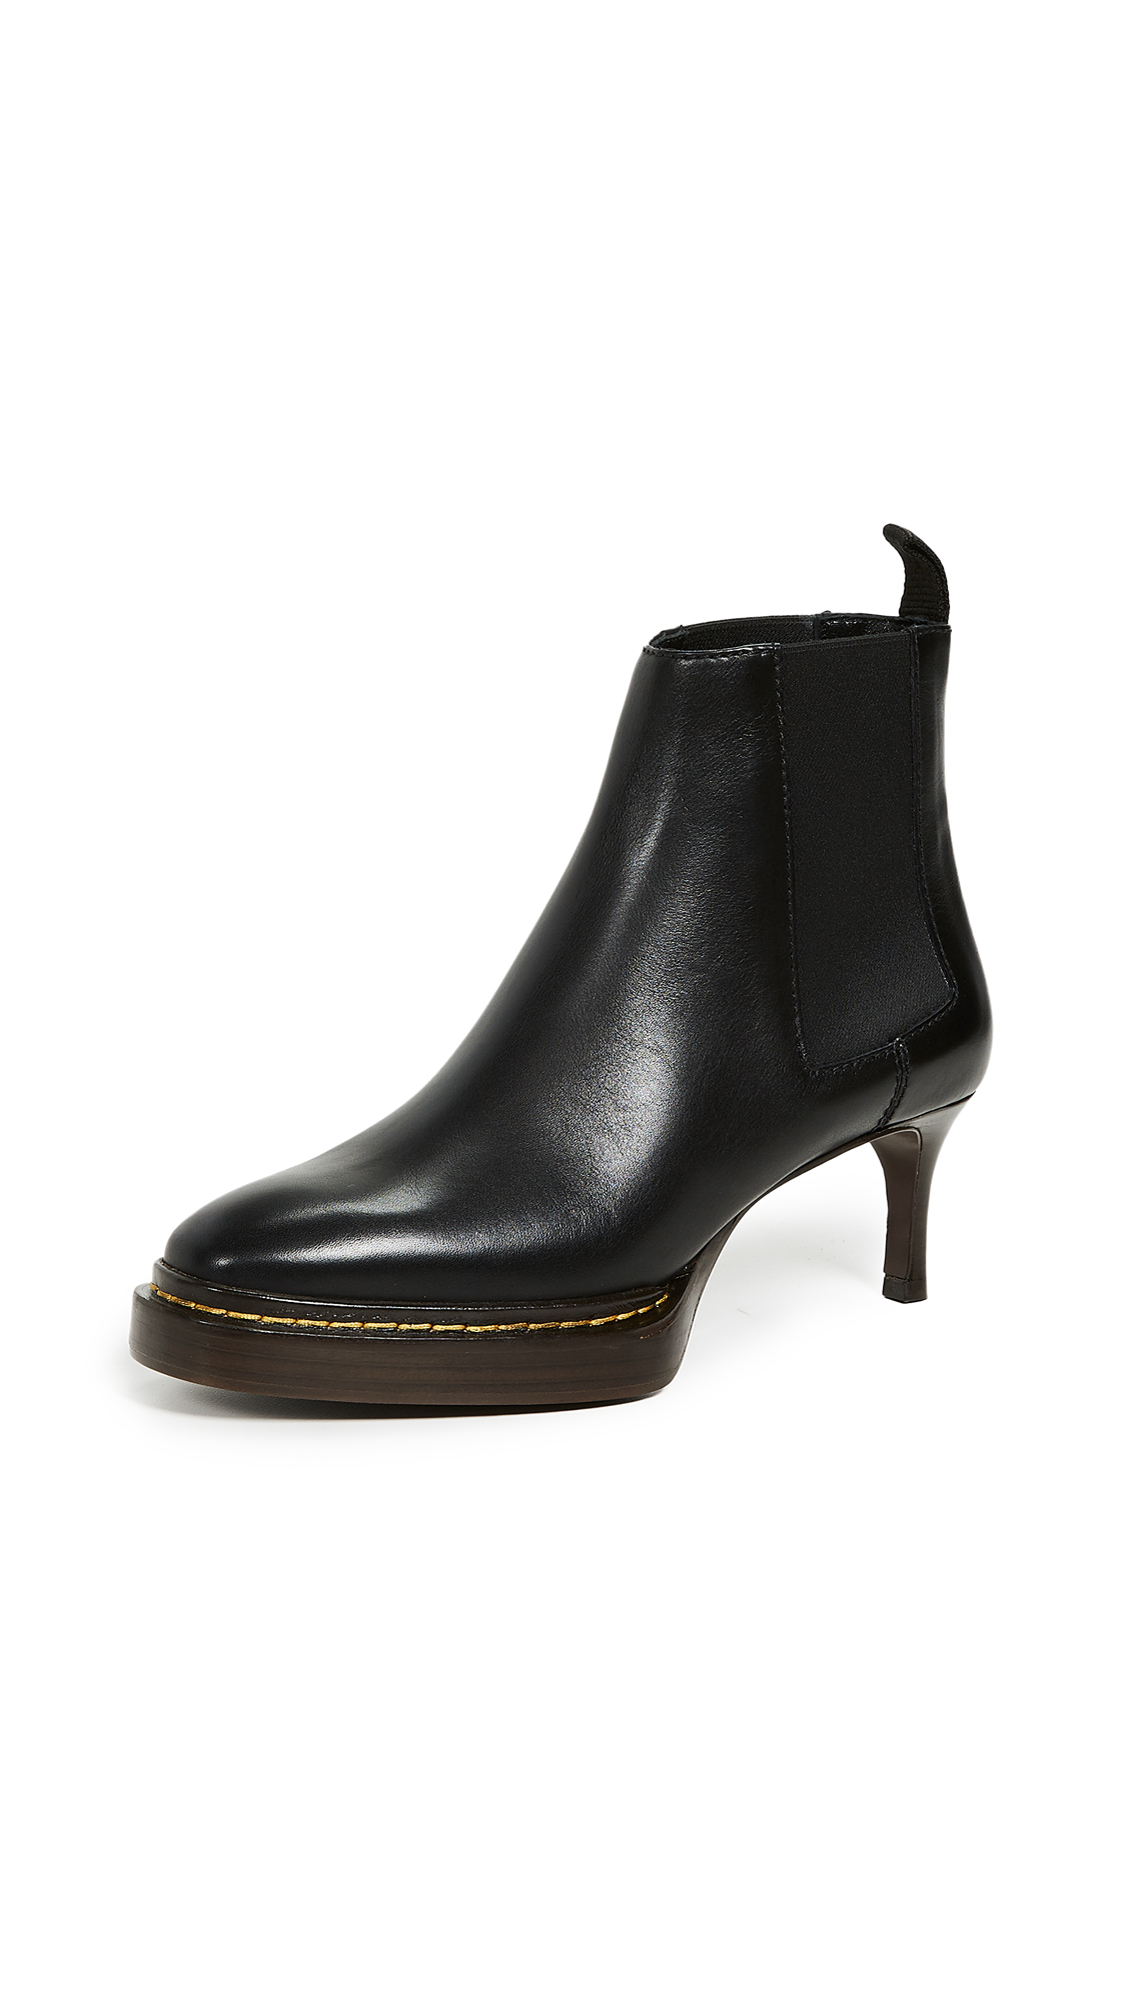 3.1 Phillip Lim Florence Chelsea Booties - Black